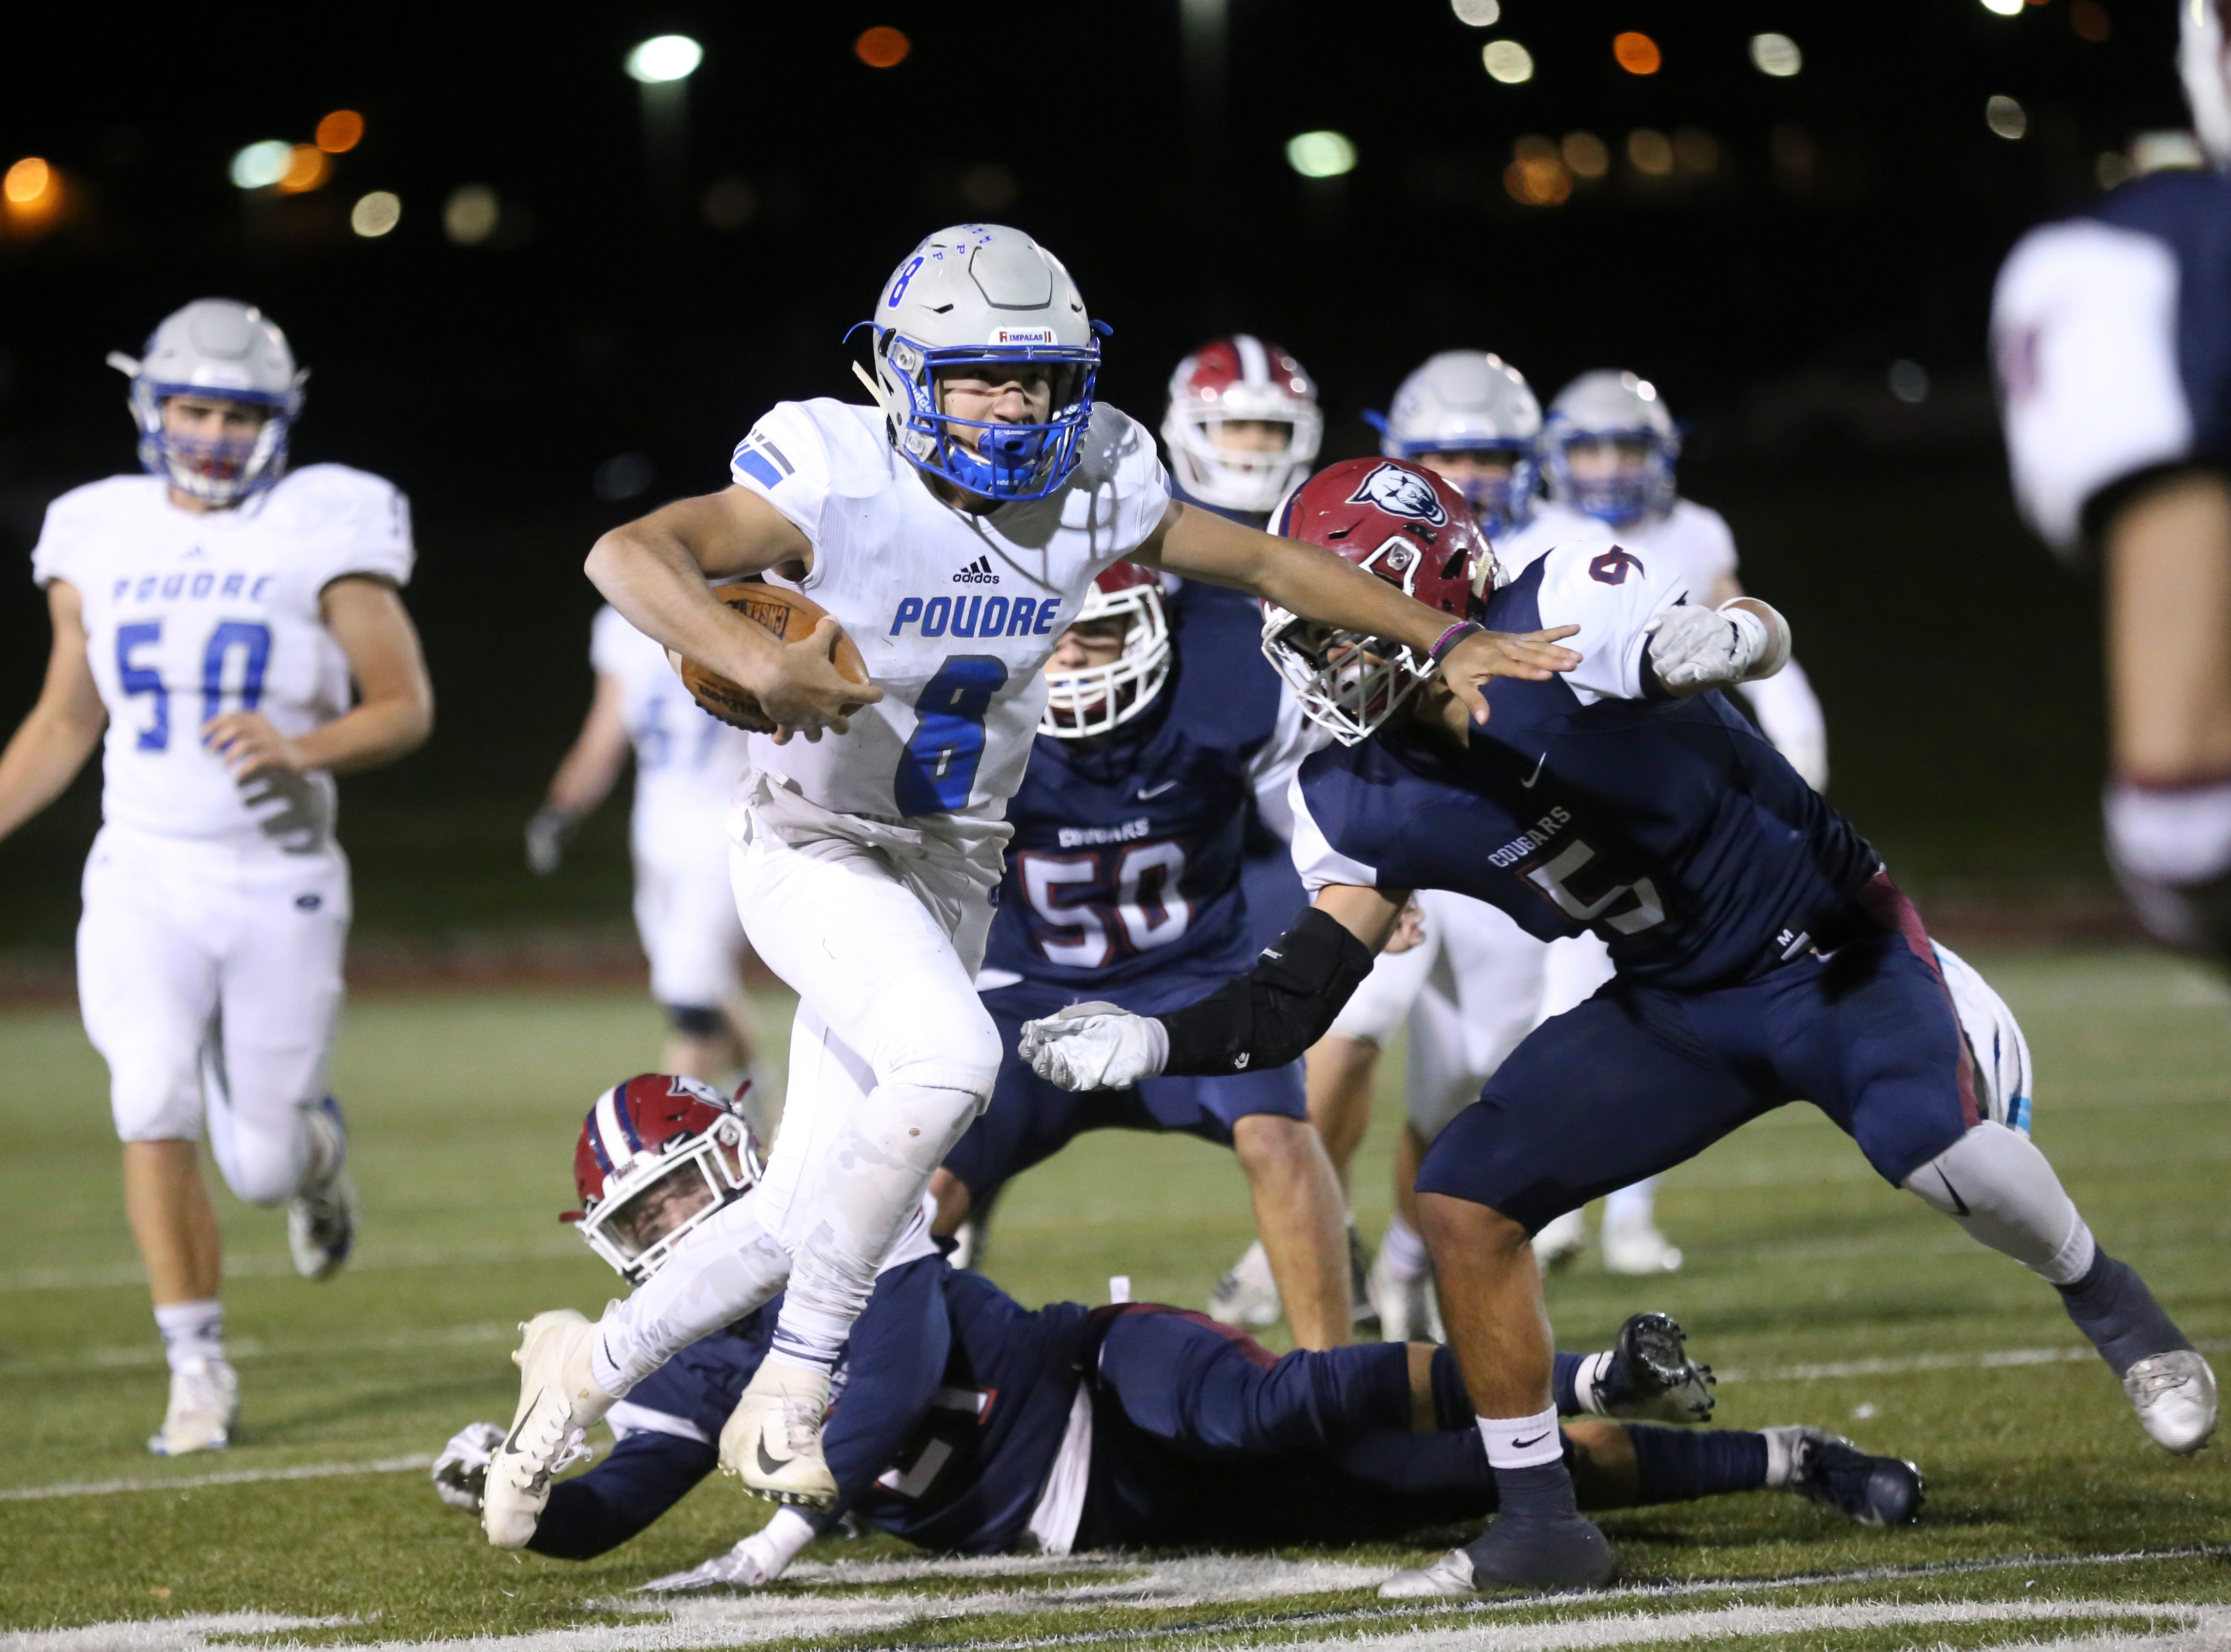 Poudre High School's Sergio Tarango runs the ball against Cherokee Trail High School during Poudre High School's  opening round playoff game in Aurora.